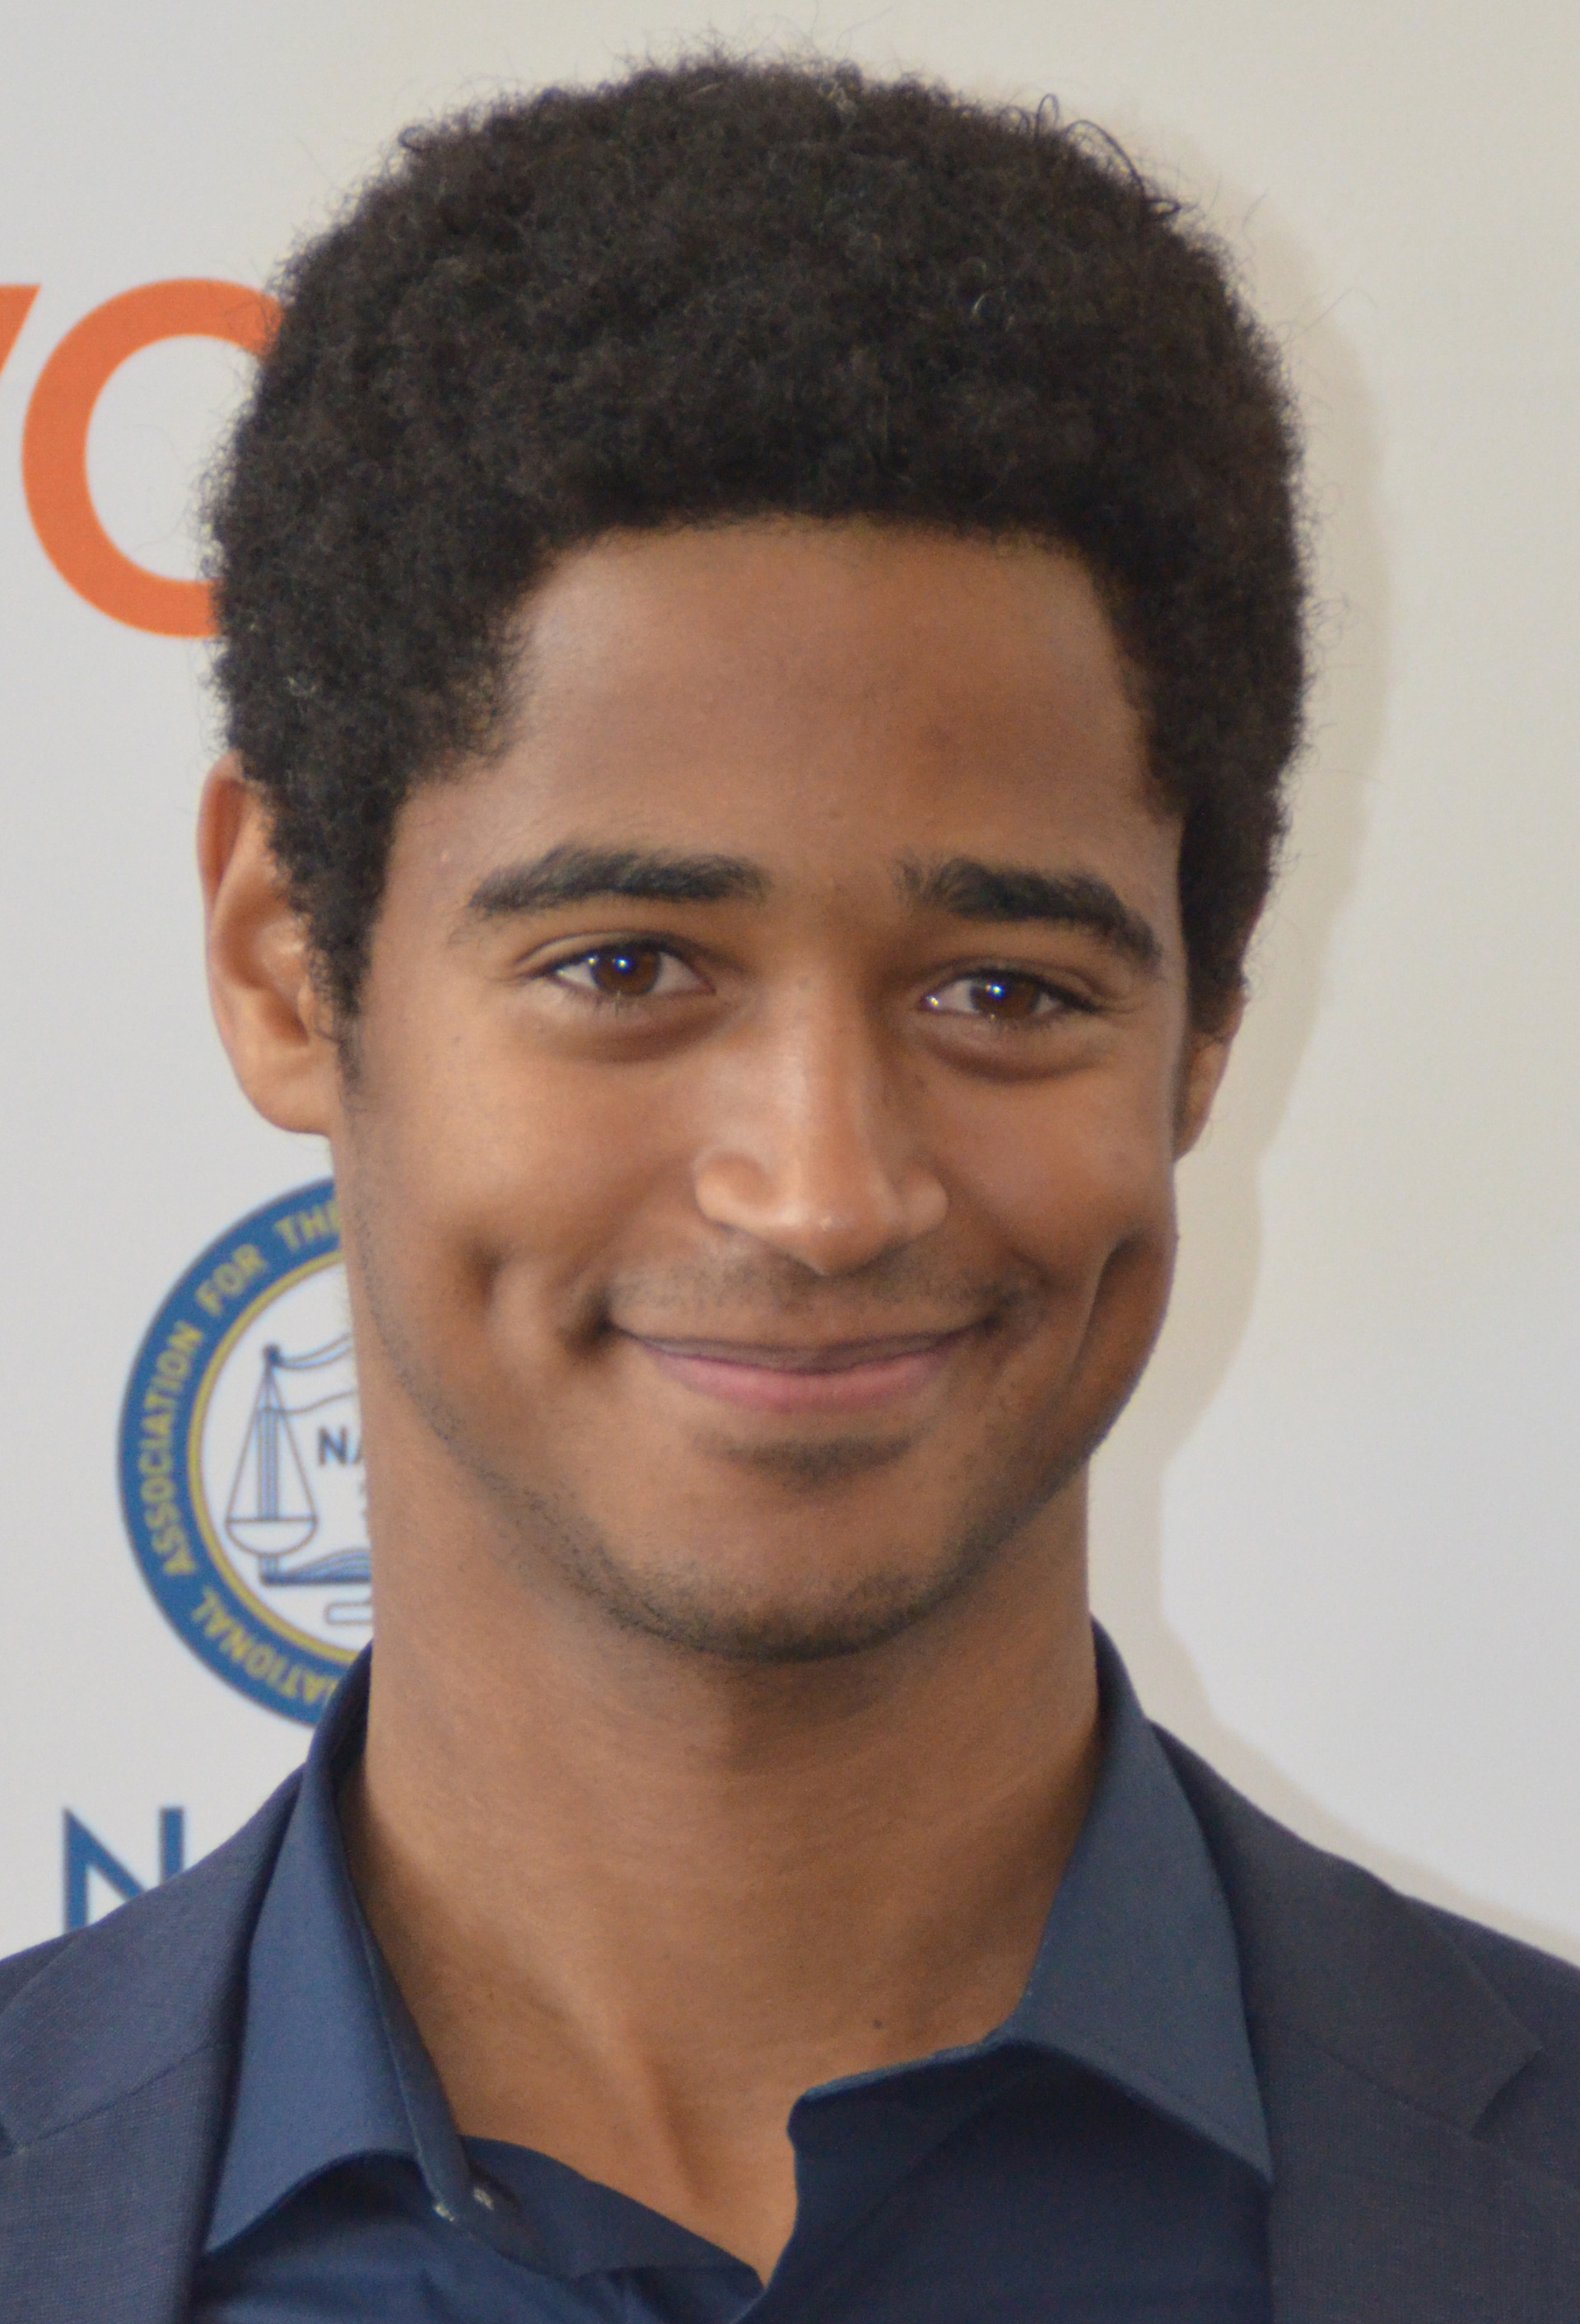 Alfred Enoch earned a  million dollar salary, leaving the net worth at 3 million in 2017